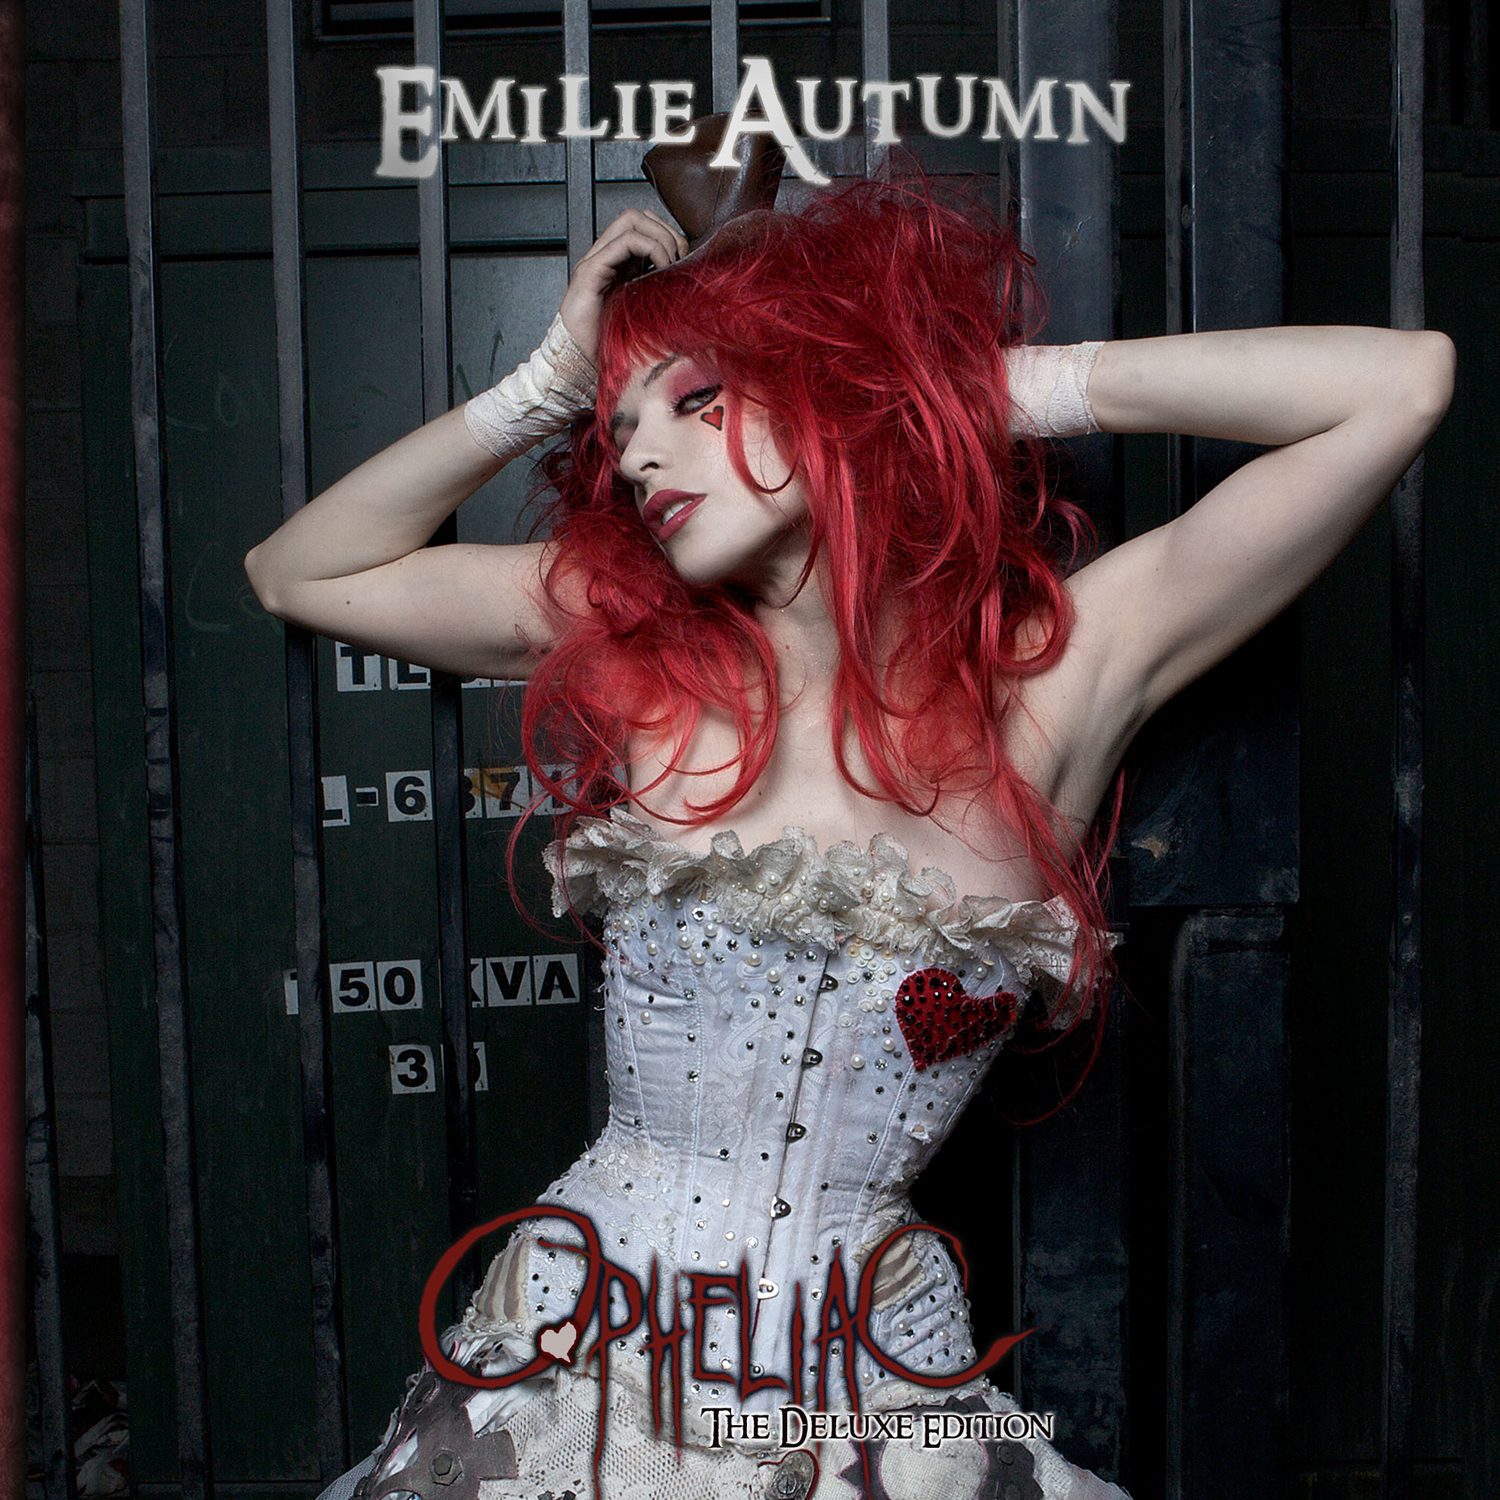 Artwork for Emilie Autumn album Opheliac - the perfect soundtrack for the Immortal Empire series by Kate Locke, which starts with GOD SAVE THE QUEEN